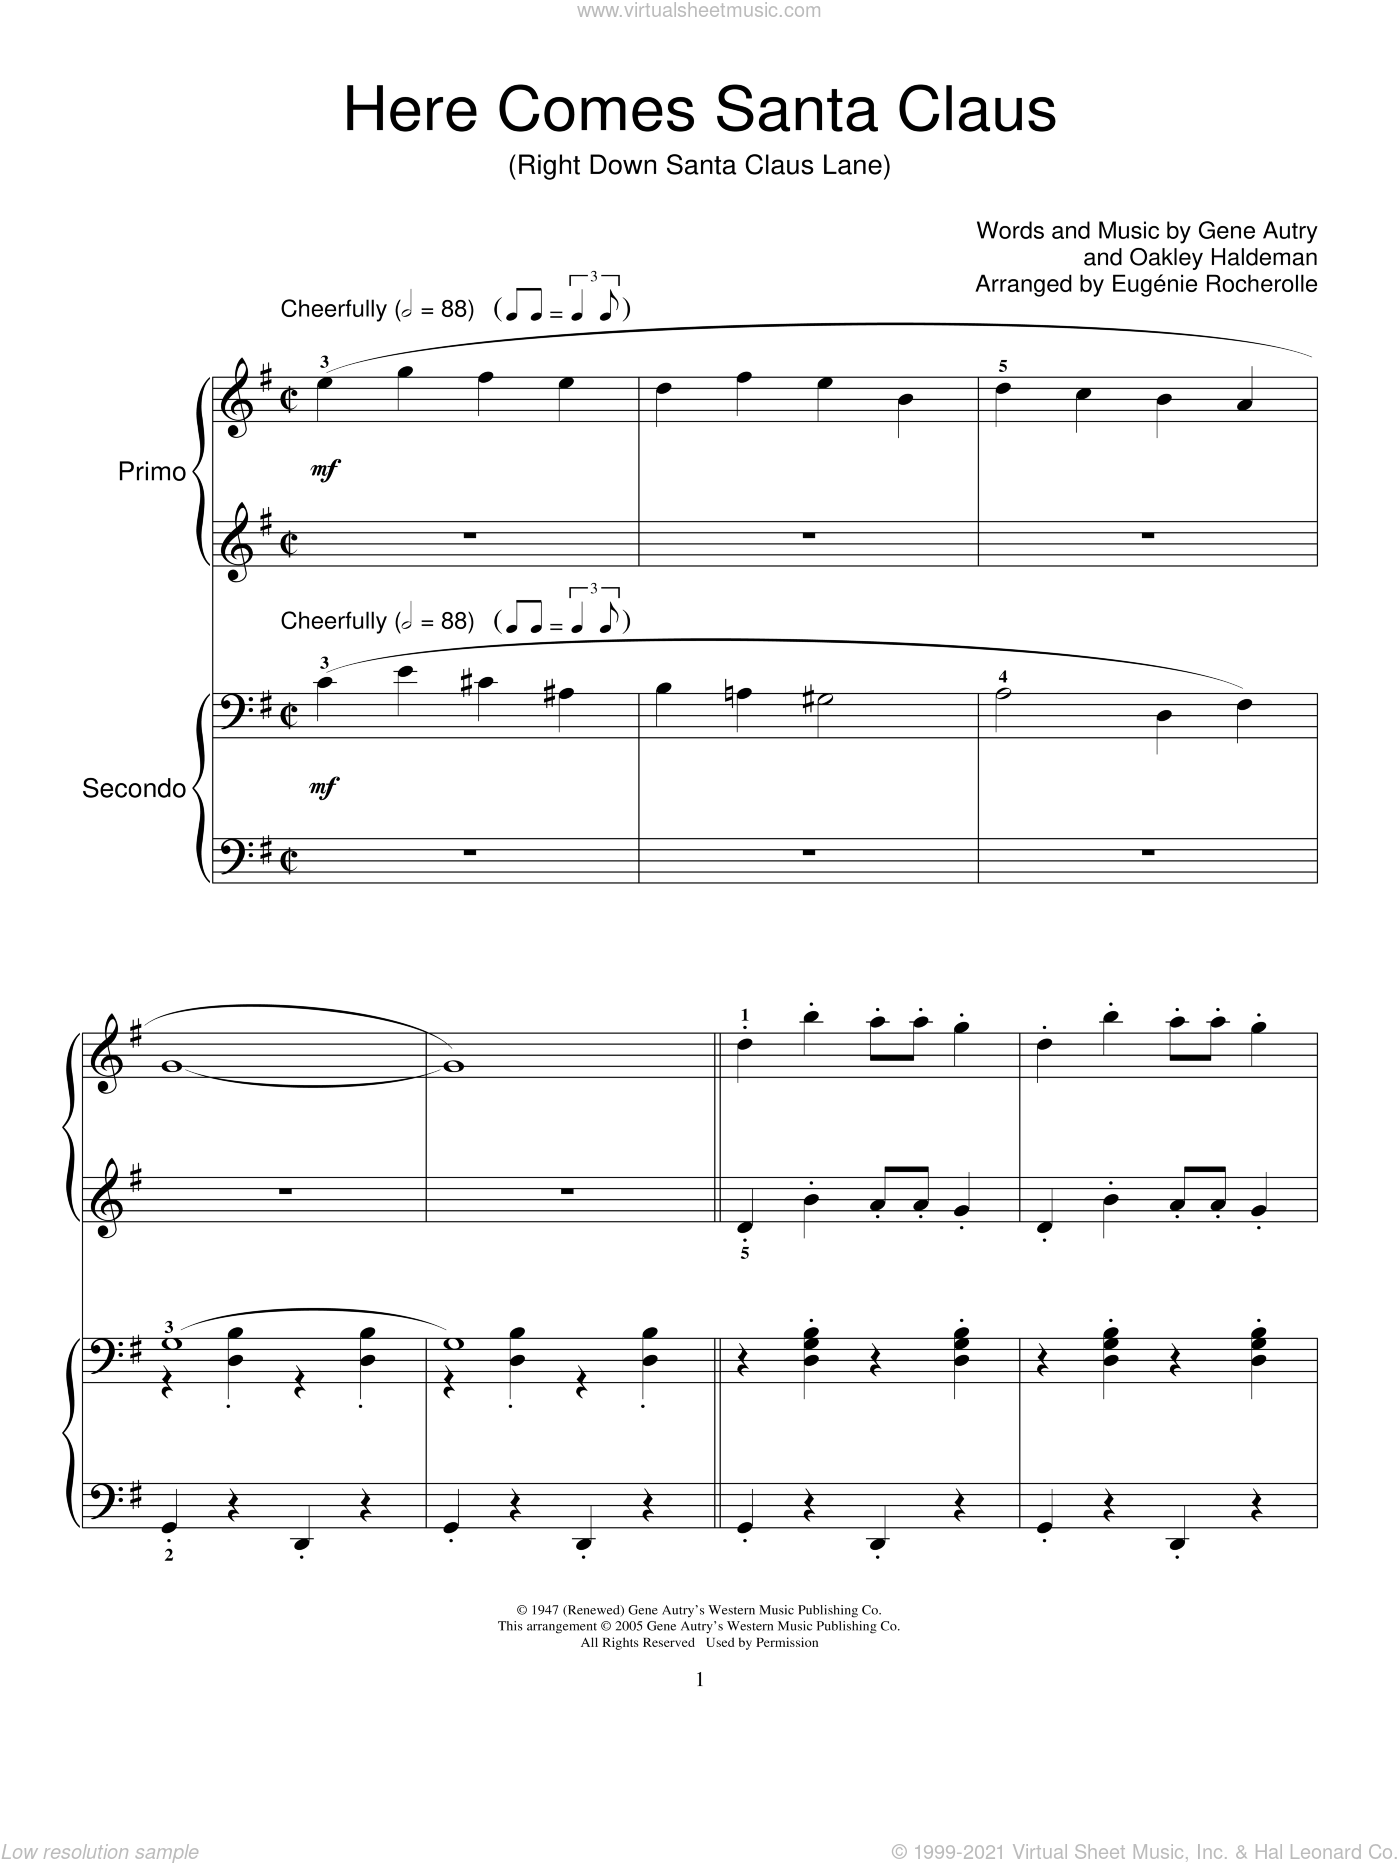 Here Comes Santa Claus (Right Down Santa Claus Lane) sheet music for piano four hands (duets) by Oakley Haldeman